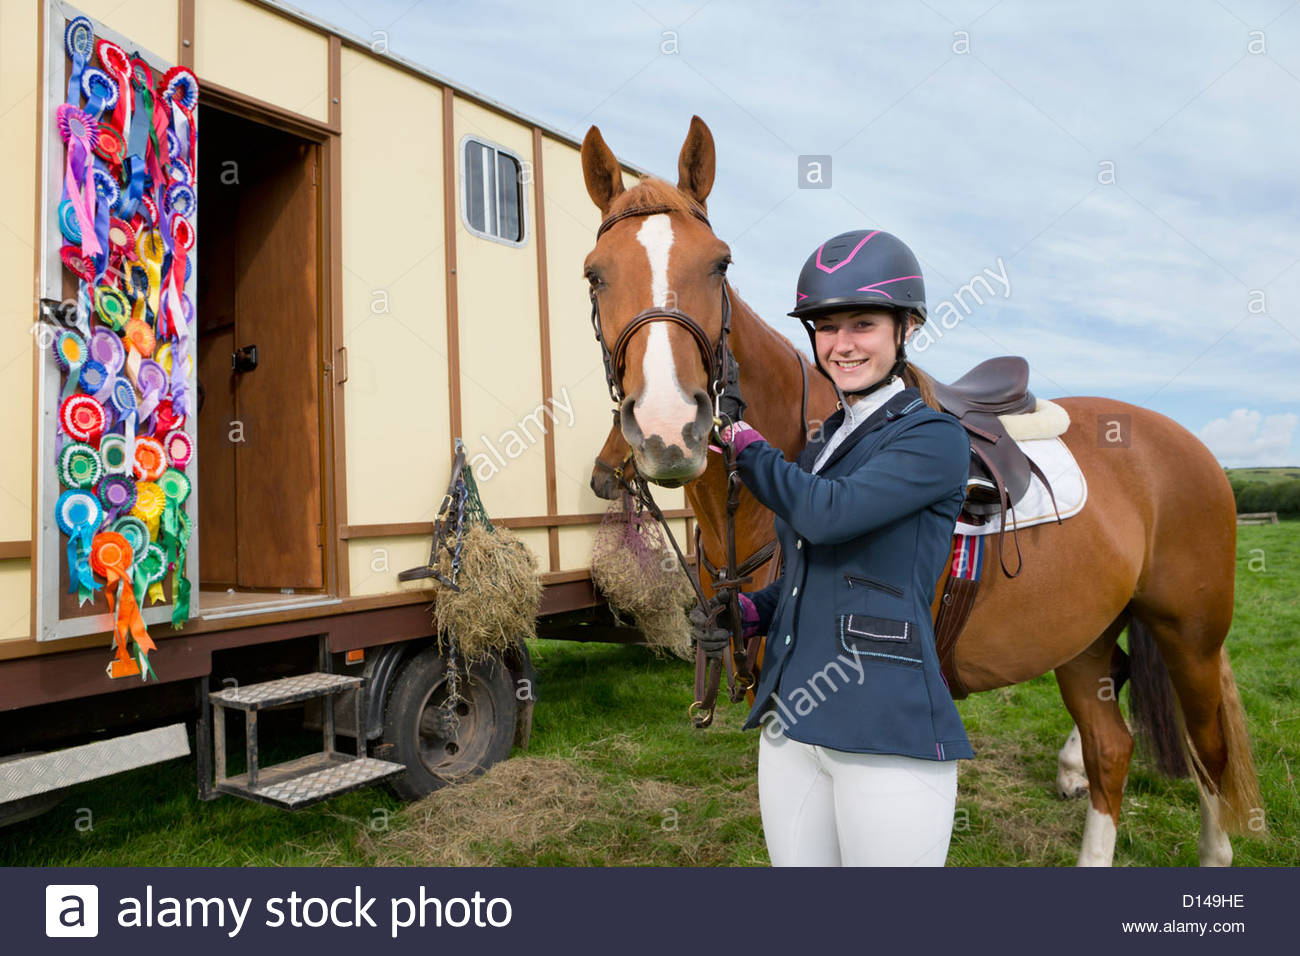 Portrait of smiling girl in equestrian uniform with horse near trailer door covered with rosettes - Stock Image